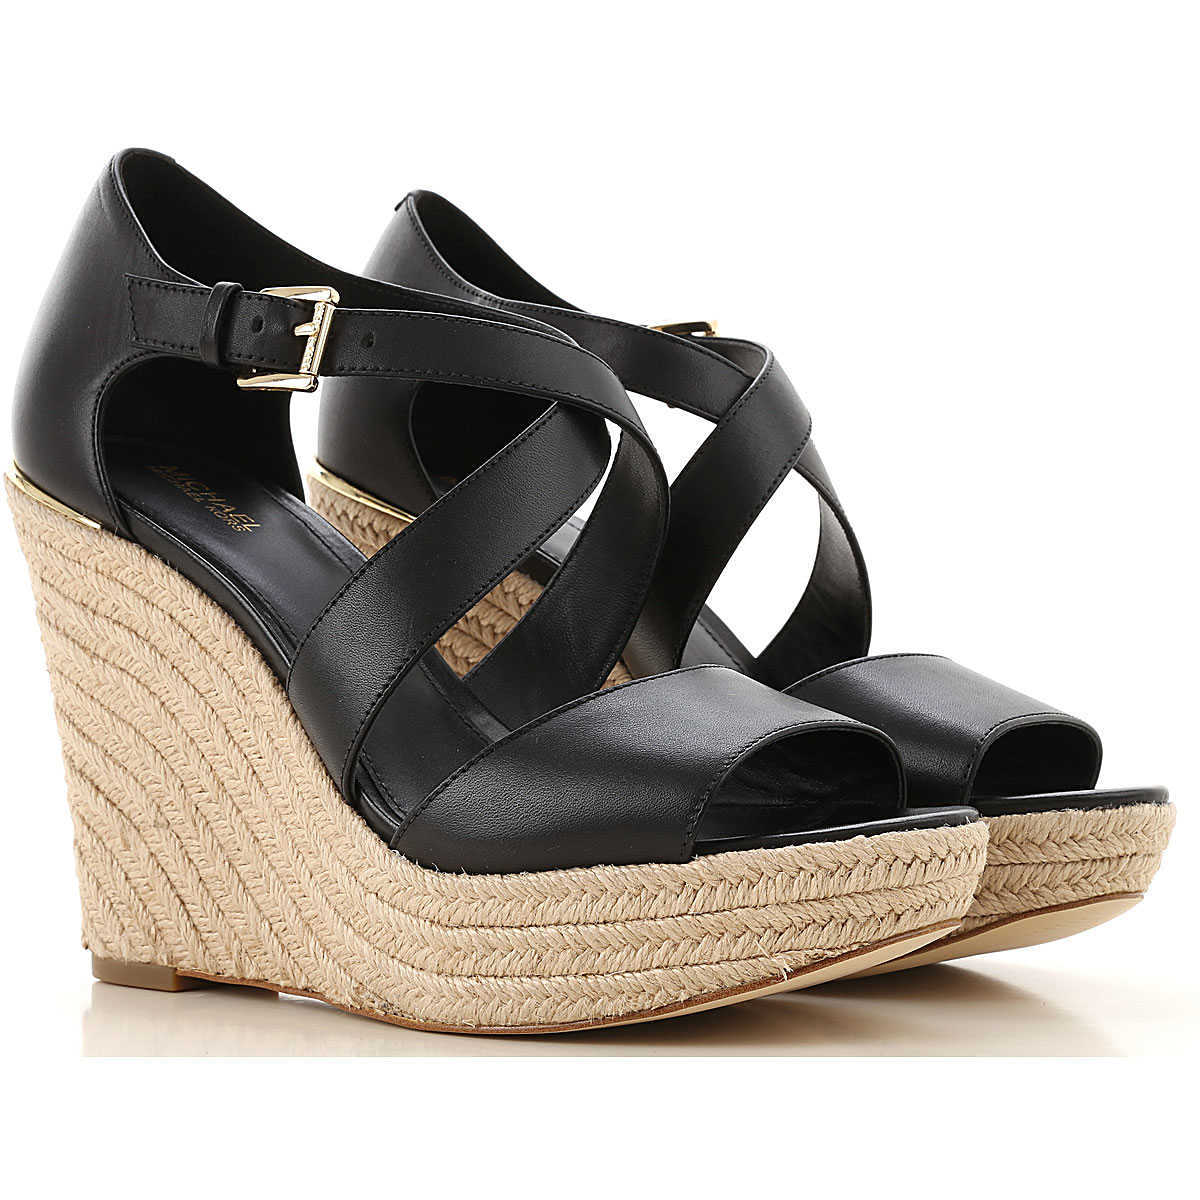 Michael Kors Wedges for Women On Sale Black DK - GOOFASH - Womens HOUSE SHOES